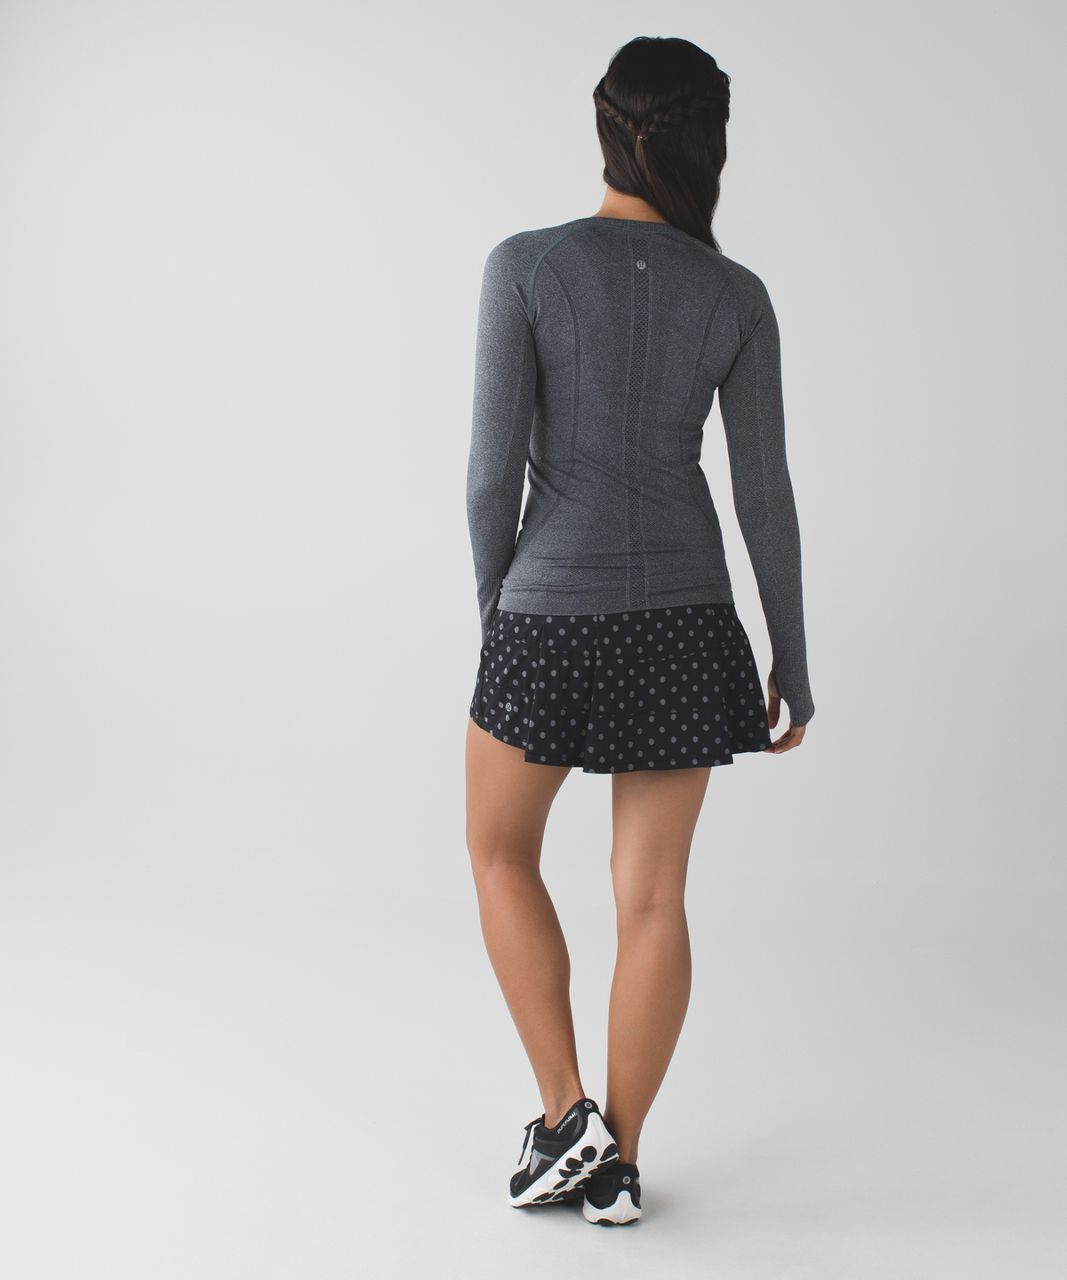 Lululemon Pace Rival Skirt II (Tall) *4-way Stretch - Ghost Dot Black Slate / Black